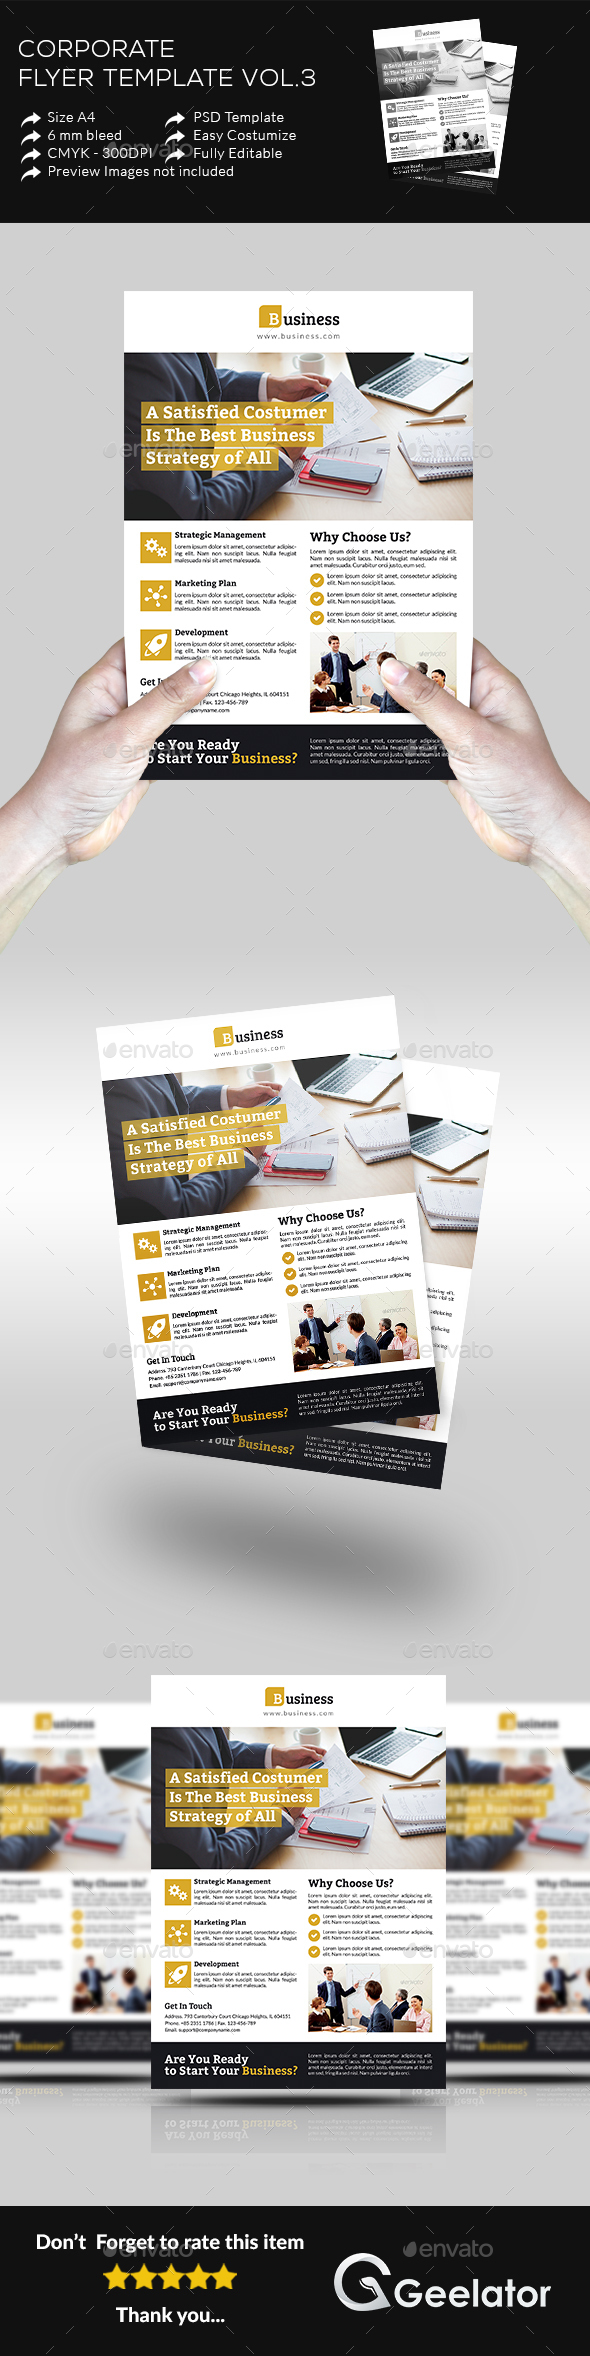 Corporate Flyer Template Vol 3 - Corporate Flyers